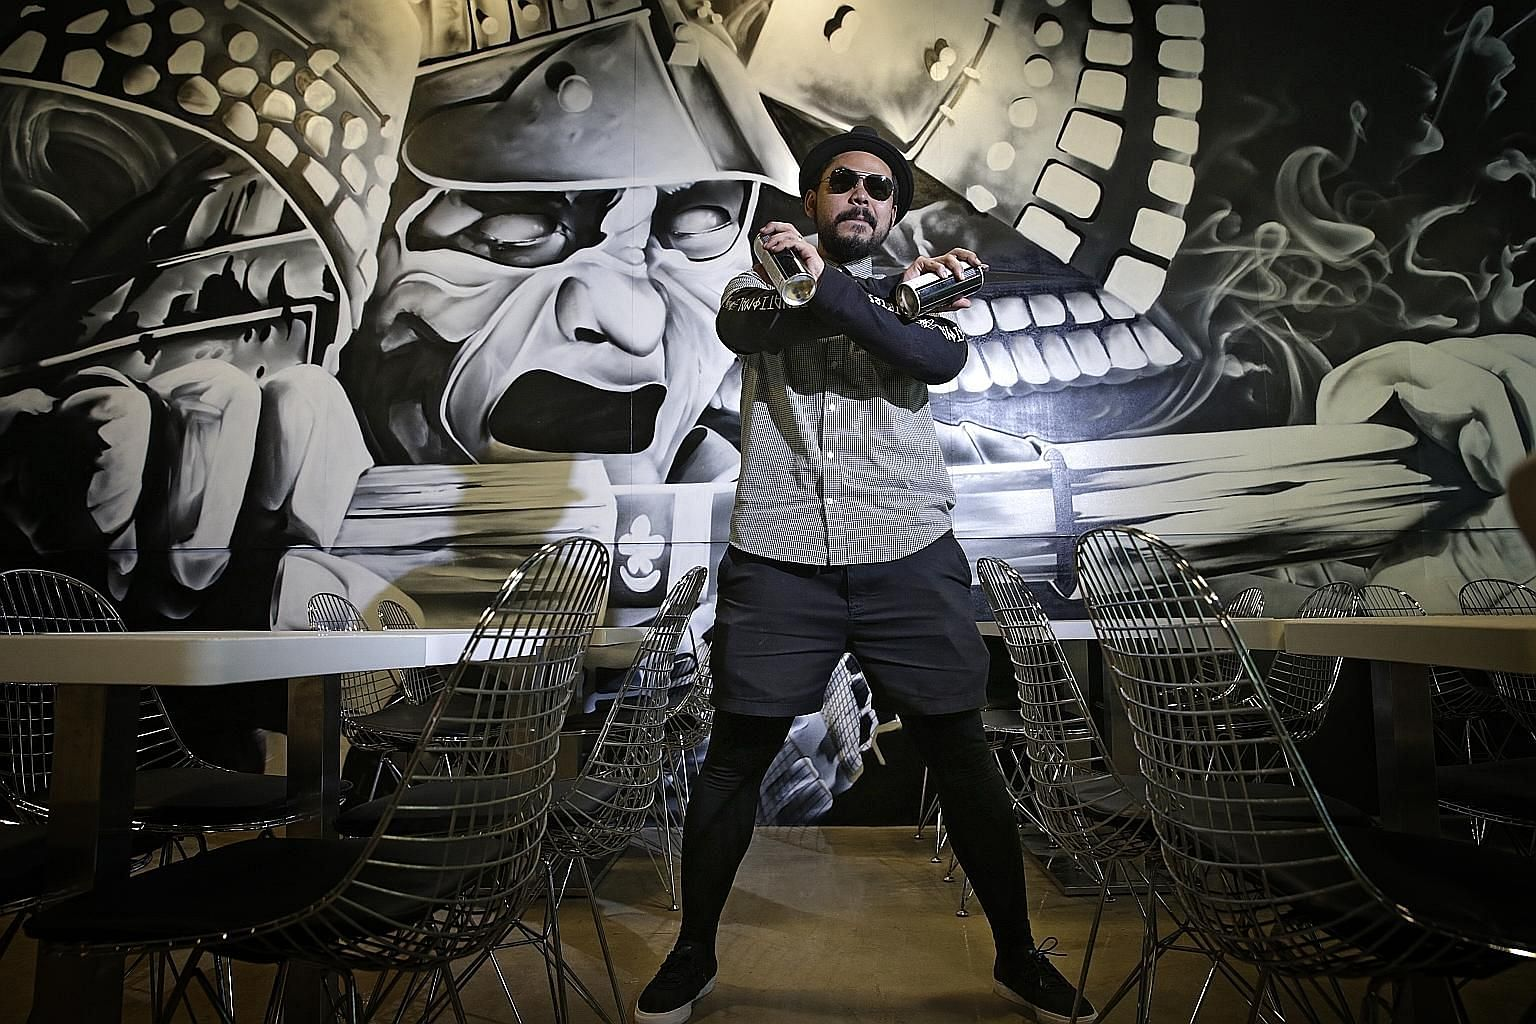 Mr Azlan, better known as Ceno2, has created several hundred graffiti artworks in Chicago and New York, and has also done numerous local pieces. He is pictured here with an artwork that he did for a local restaurant.